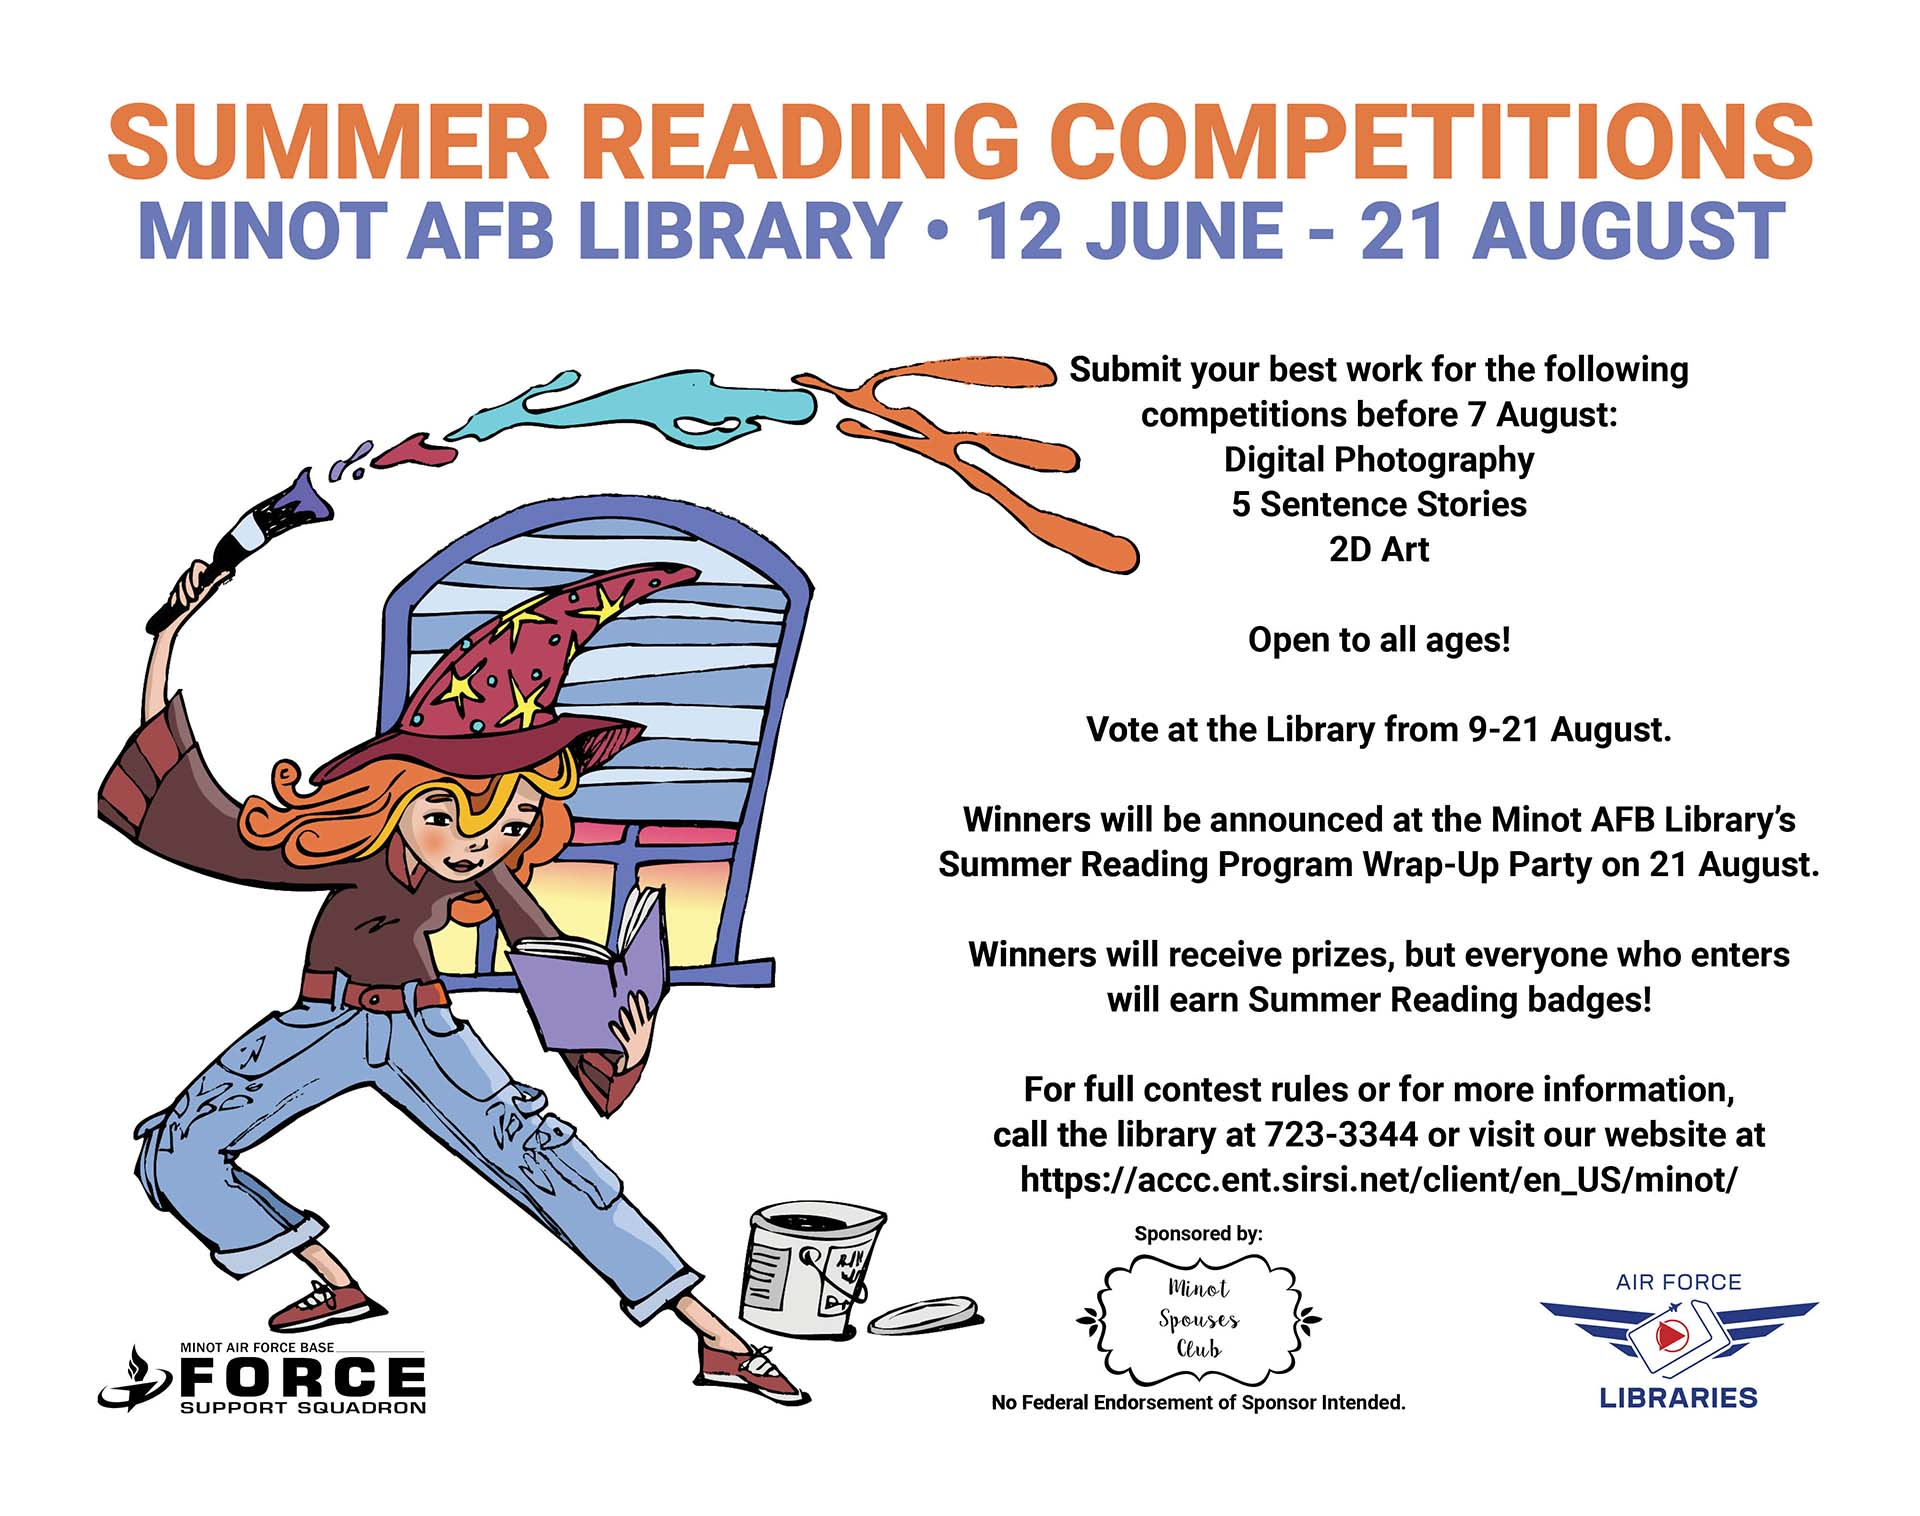 Summer Reading Program Competitions End